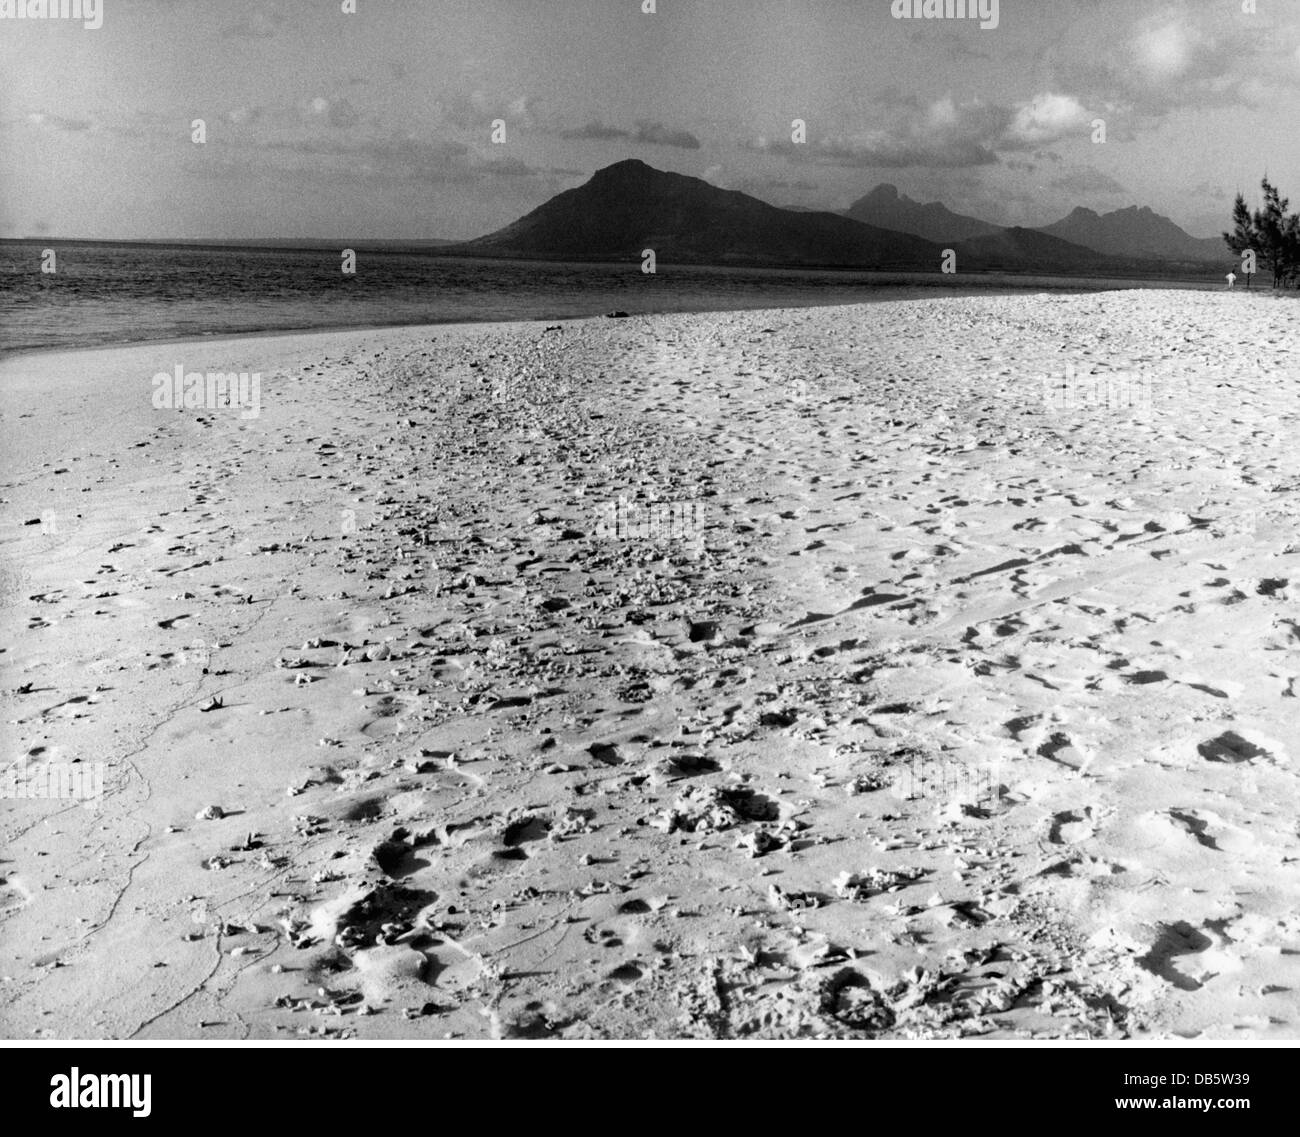 geography / travel, Mauritius, Le Morne, beach, 1960s, 60s, 20th century, historic, historical, Indian Ocean, beaches, - Stock Image